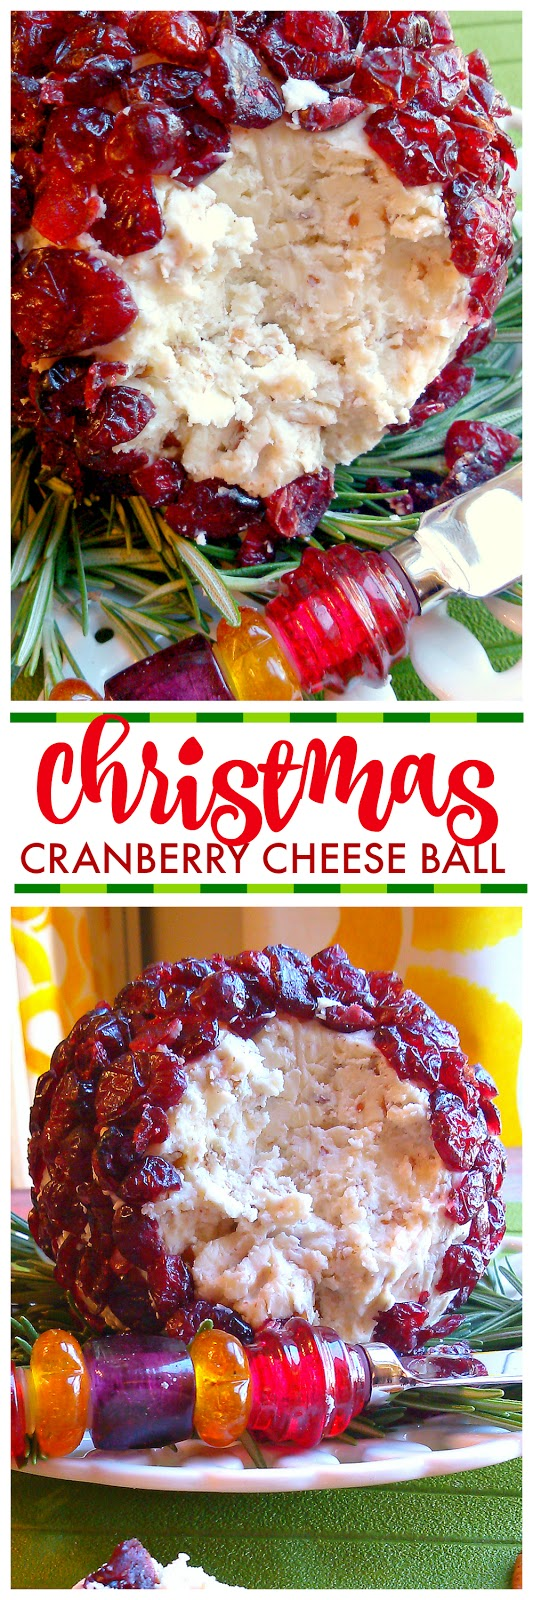 Christmas Cranberry Cheese Ball! A festive cheese ball recipe made with goat cheese or cream cheese, white cheddar, pecans and cranberries perfect for Christmas parties and entertaining! #christmas #appetizer #recipe